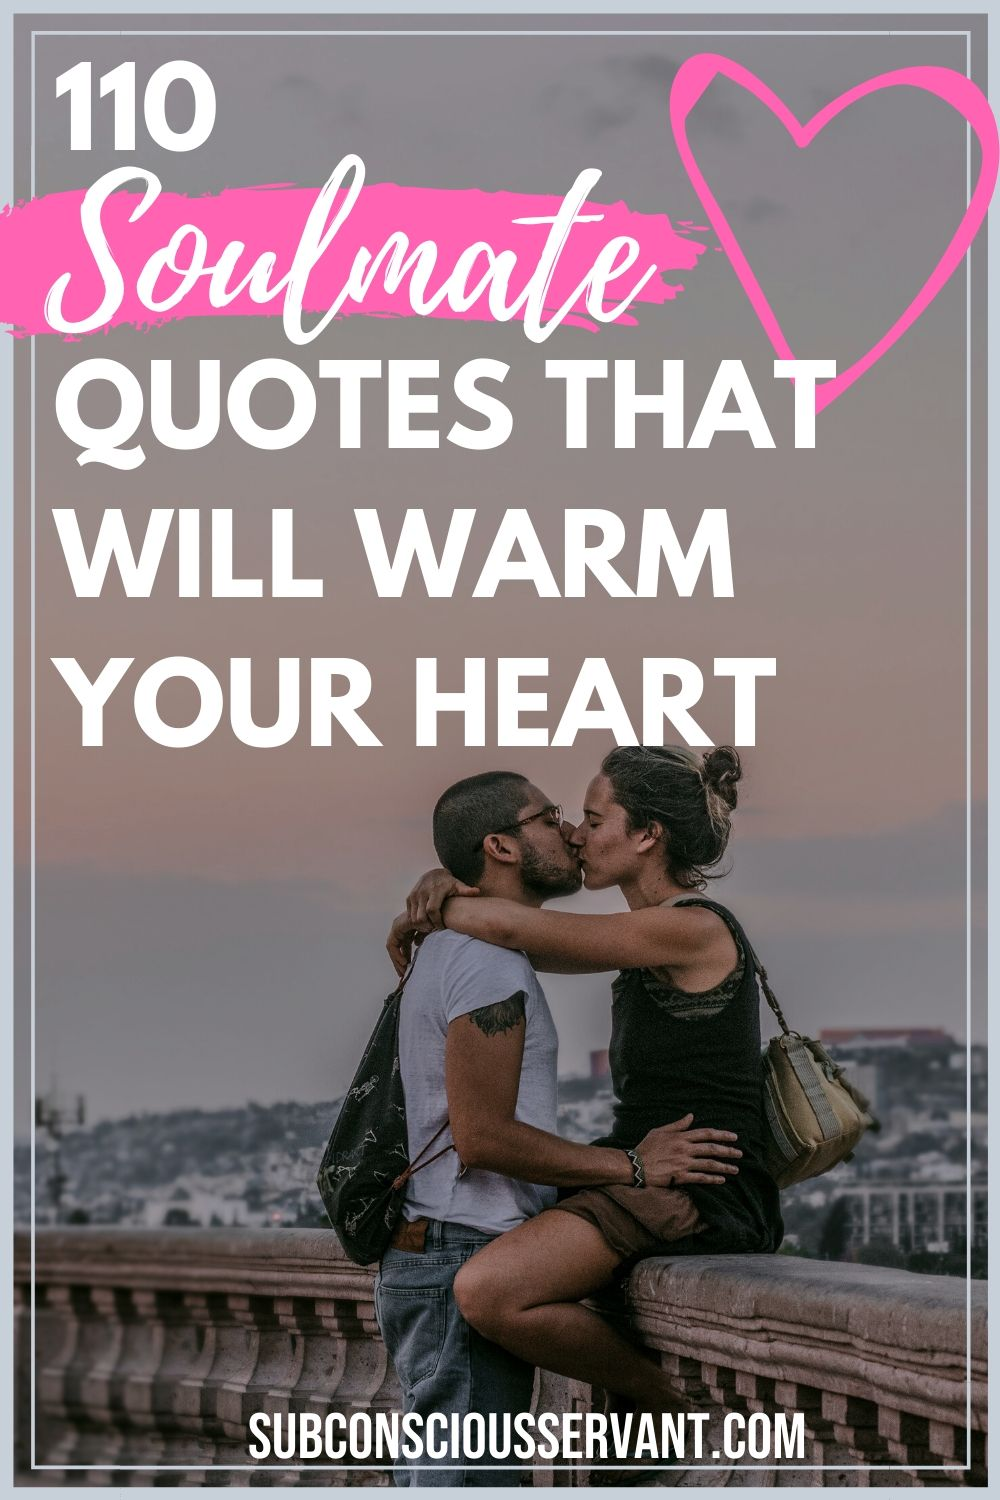 110 Soulmate Quotes (With Images) That Will Open Up Your Heart